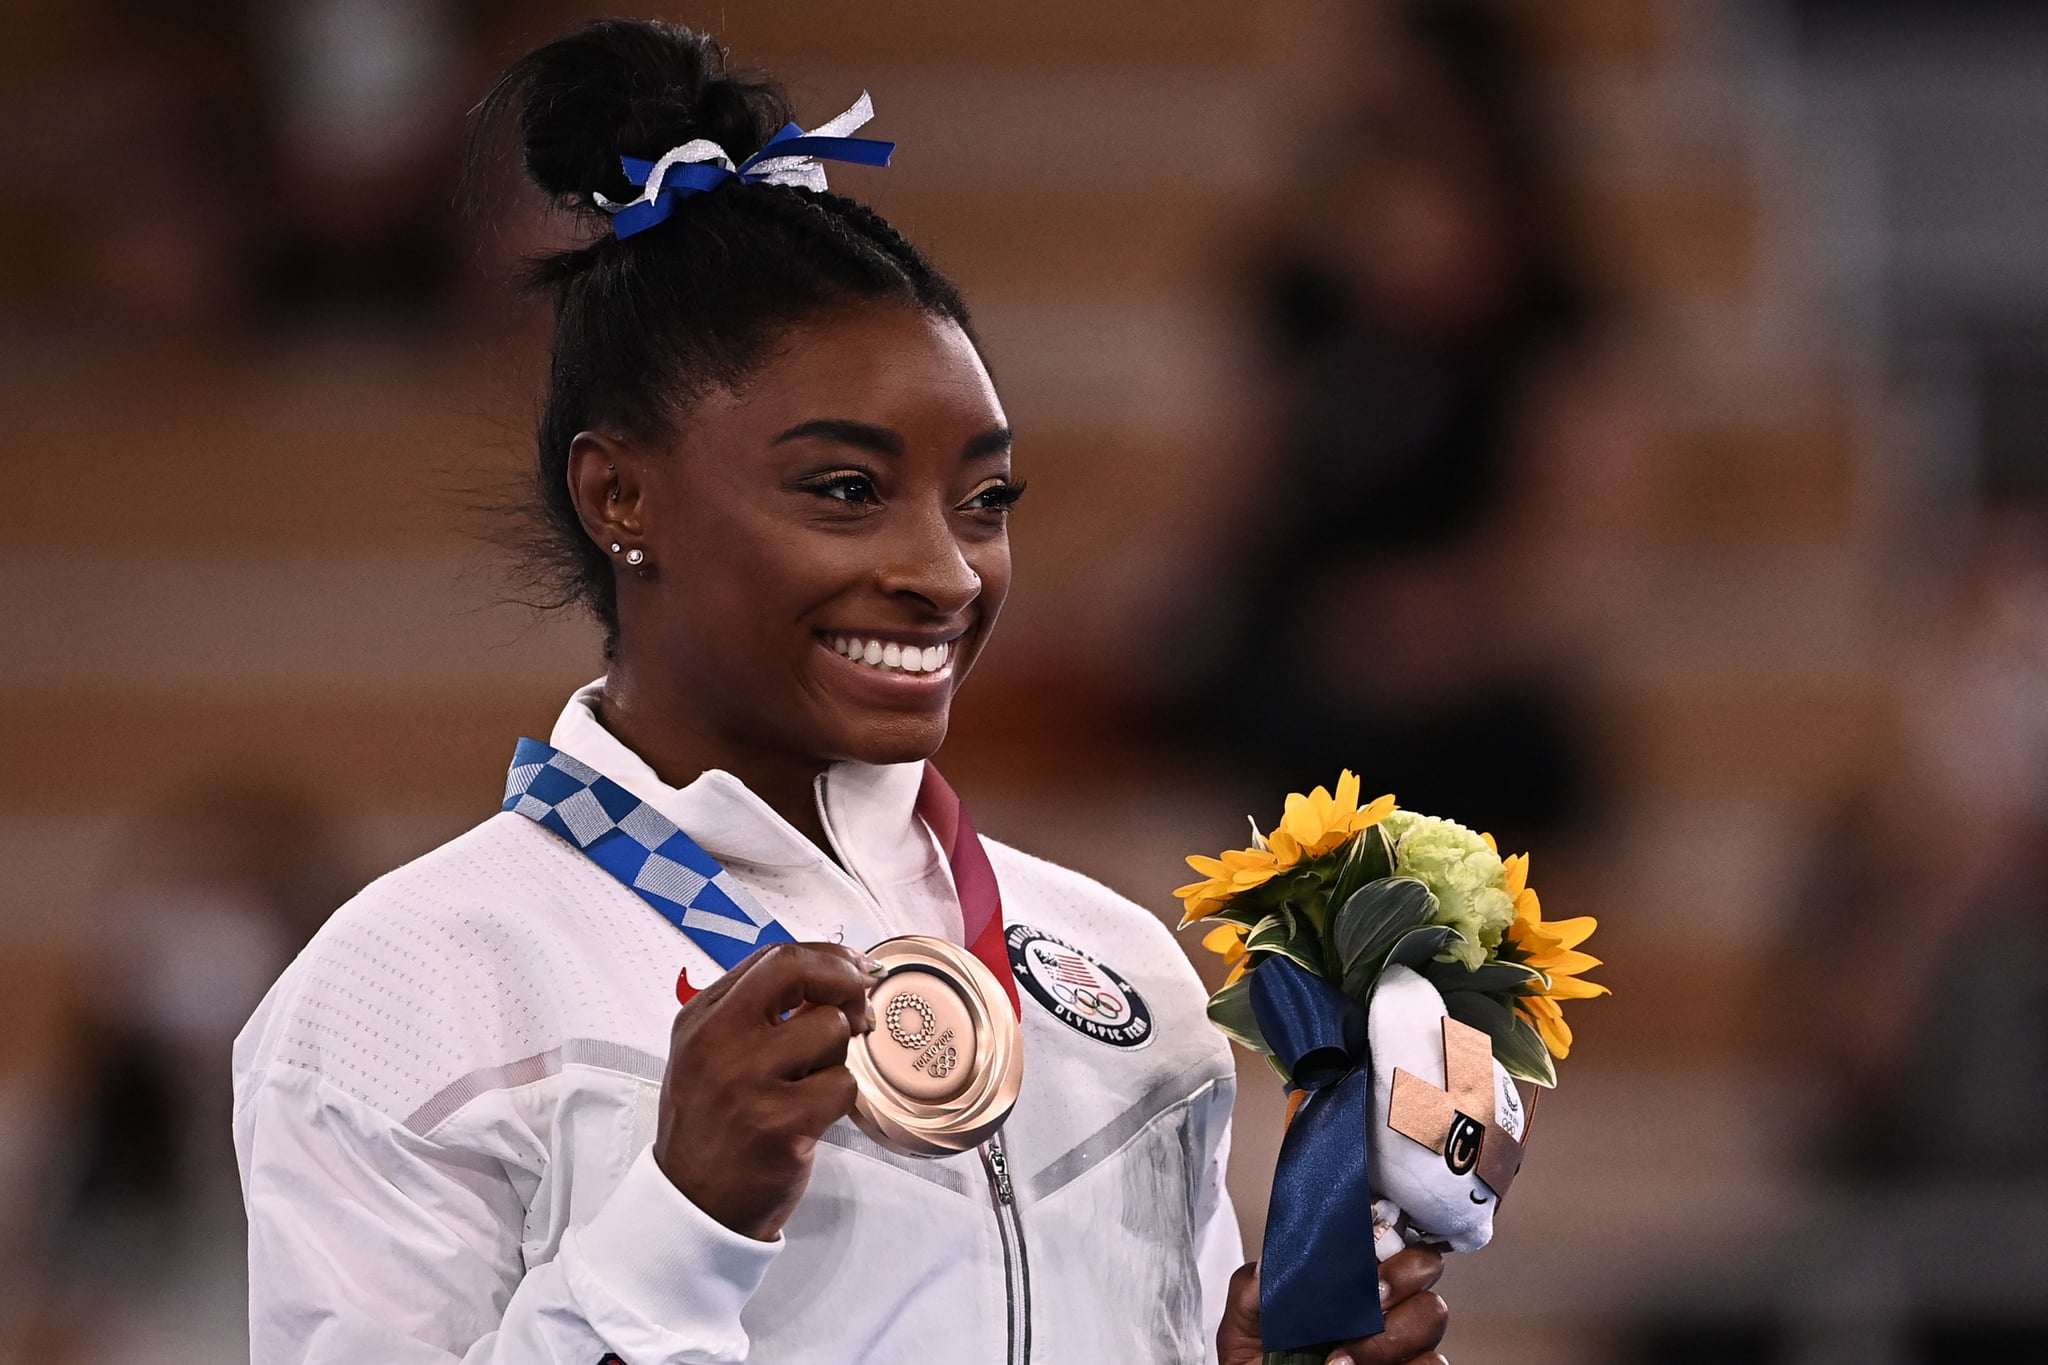 USA's Simone Biles poses with her bronze medal during the podium ceremony of the artistic gymnastics women's balance beam of the Tokyo 2020 Olympic Games at Ariake Gymnastics Centre in Tokyo on August 3, 2021. (Photo by Lionel BONAVENTURE / AFP) (Photo by LIONEL BONAVENTURE/AFP via Getty Images)